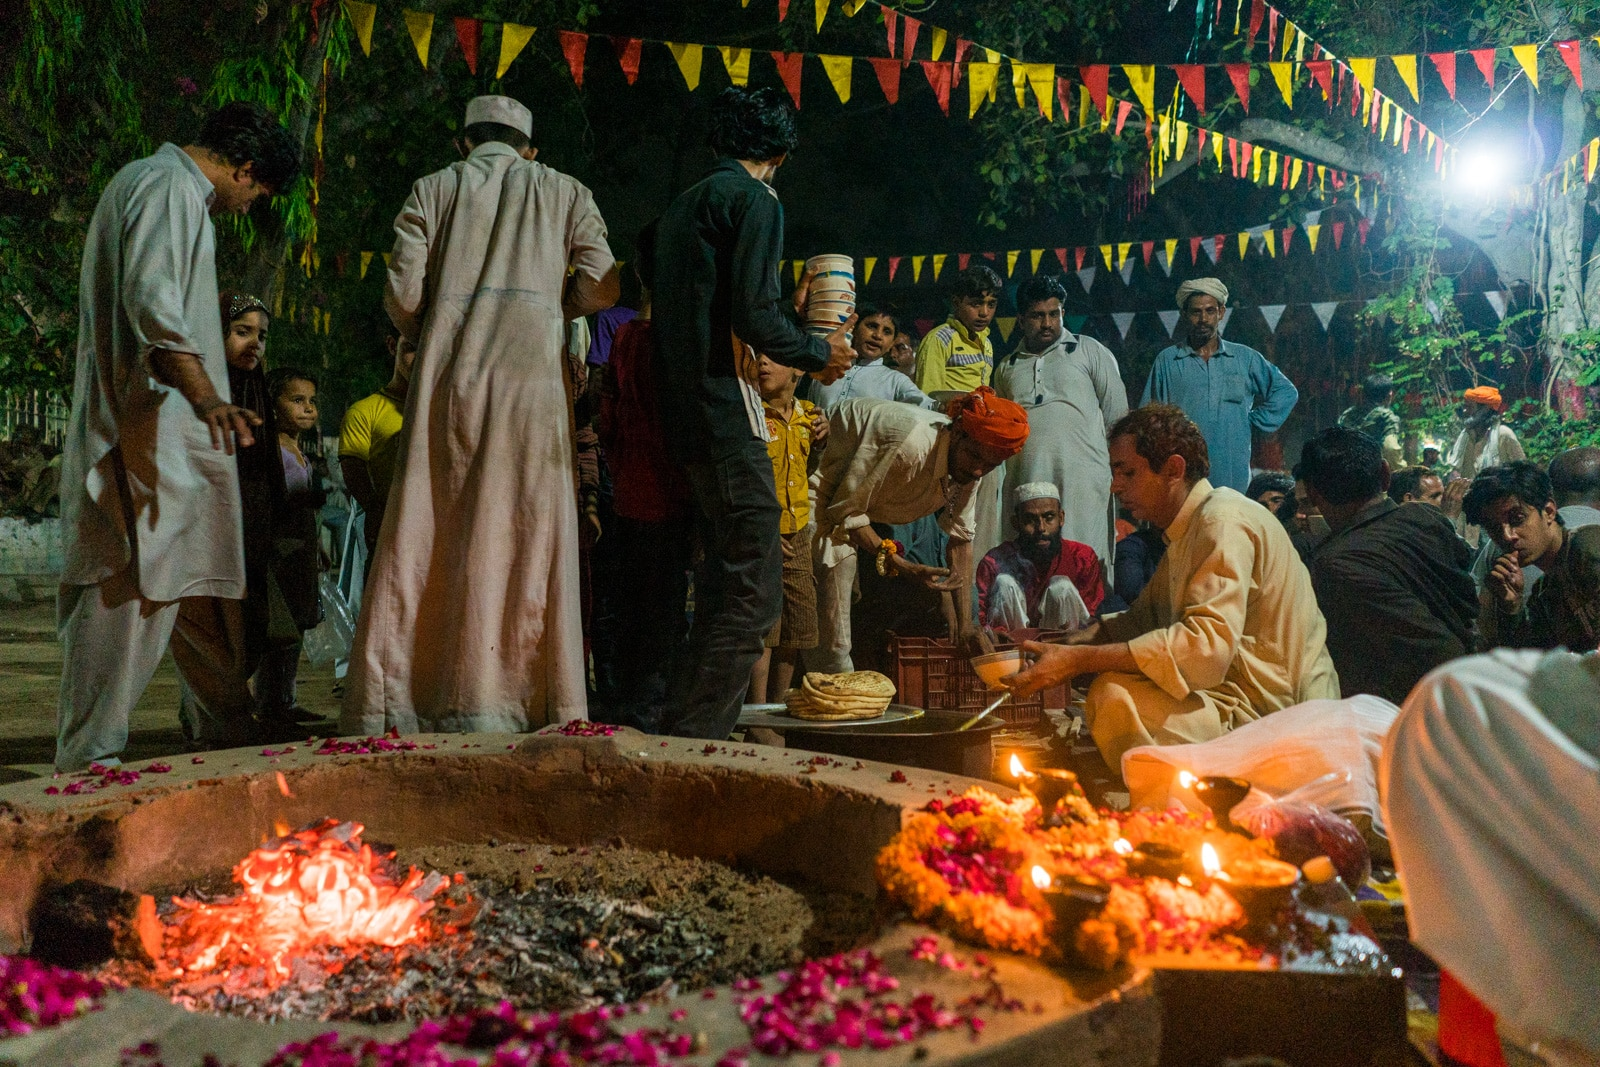 Sufi dhamal in Lahore, Pakistan - Man serving langar meal at the shrine of Madhu Lal Hussain - Lost With Purpose travel blog